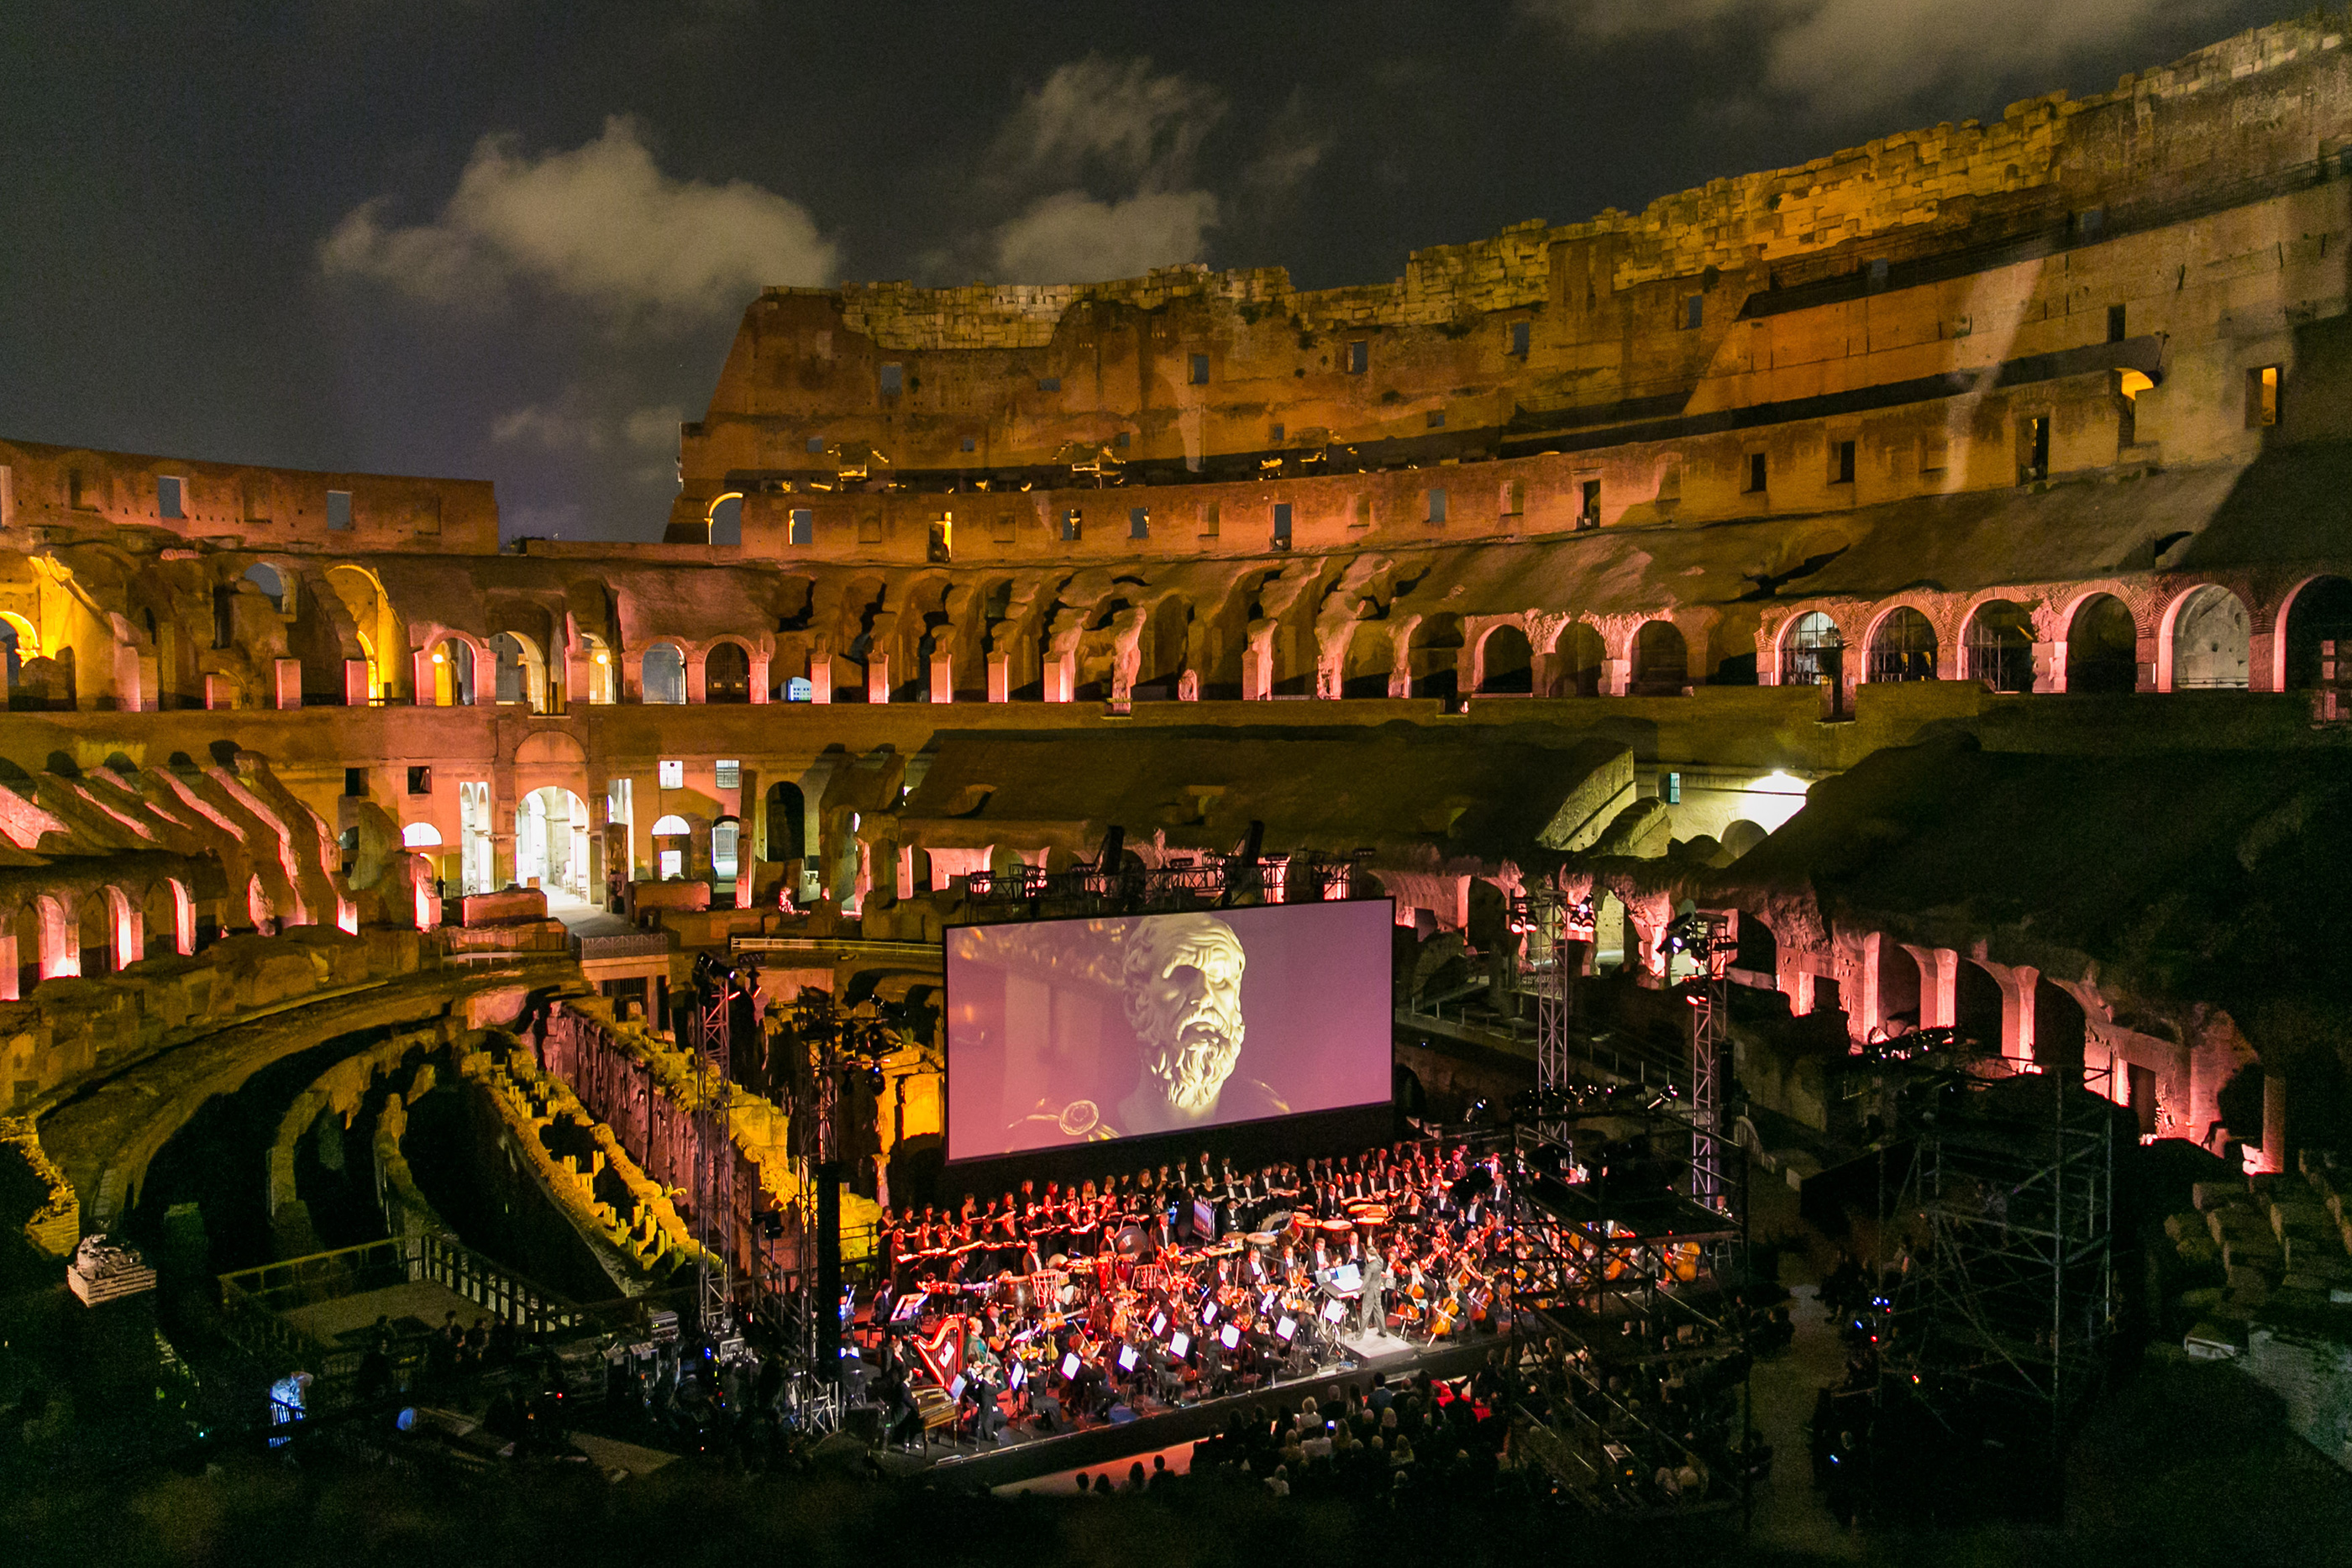 "Actor Russell Crowe and co-stars of the Oscar-winning movie ""Gladiator"" gathered 6 June for a special End Polio Now fundraising event inside the Colosseum in Rome, Italy."